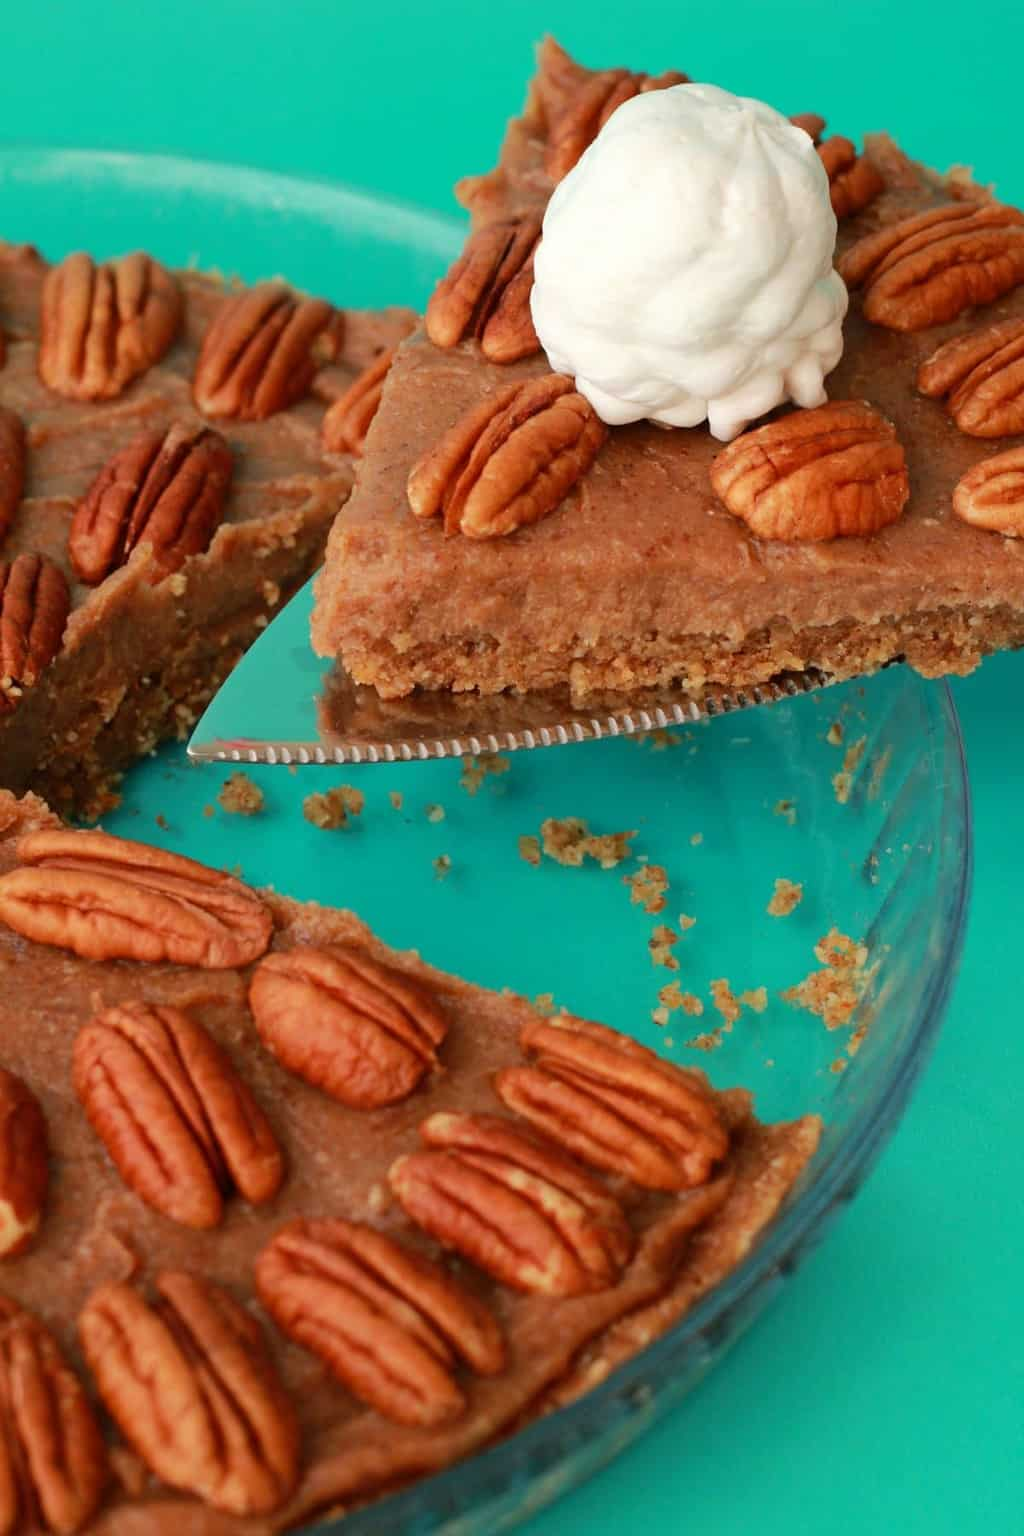 Deliciously raw vegan pecan pie. 3-layers of raw goodness, packed with pecans and pecan flavor, super easy to make. Raw and gluten-free! #vegan #lovingitvegan #pecanpie #dessert